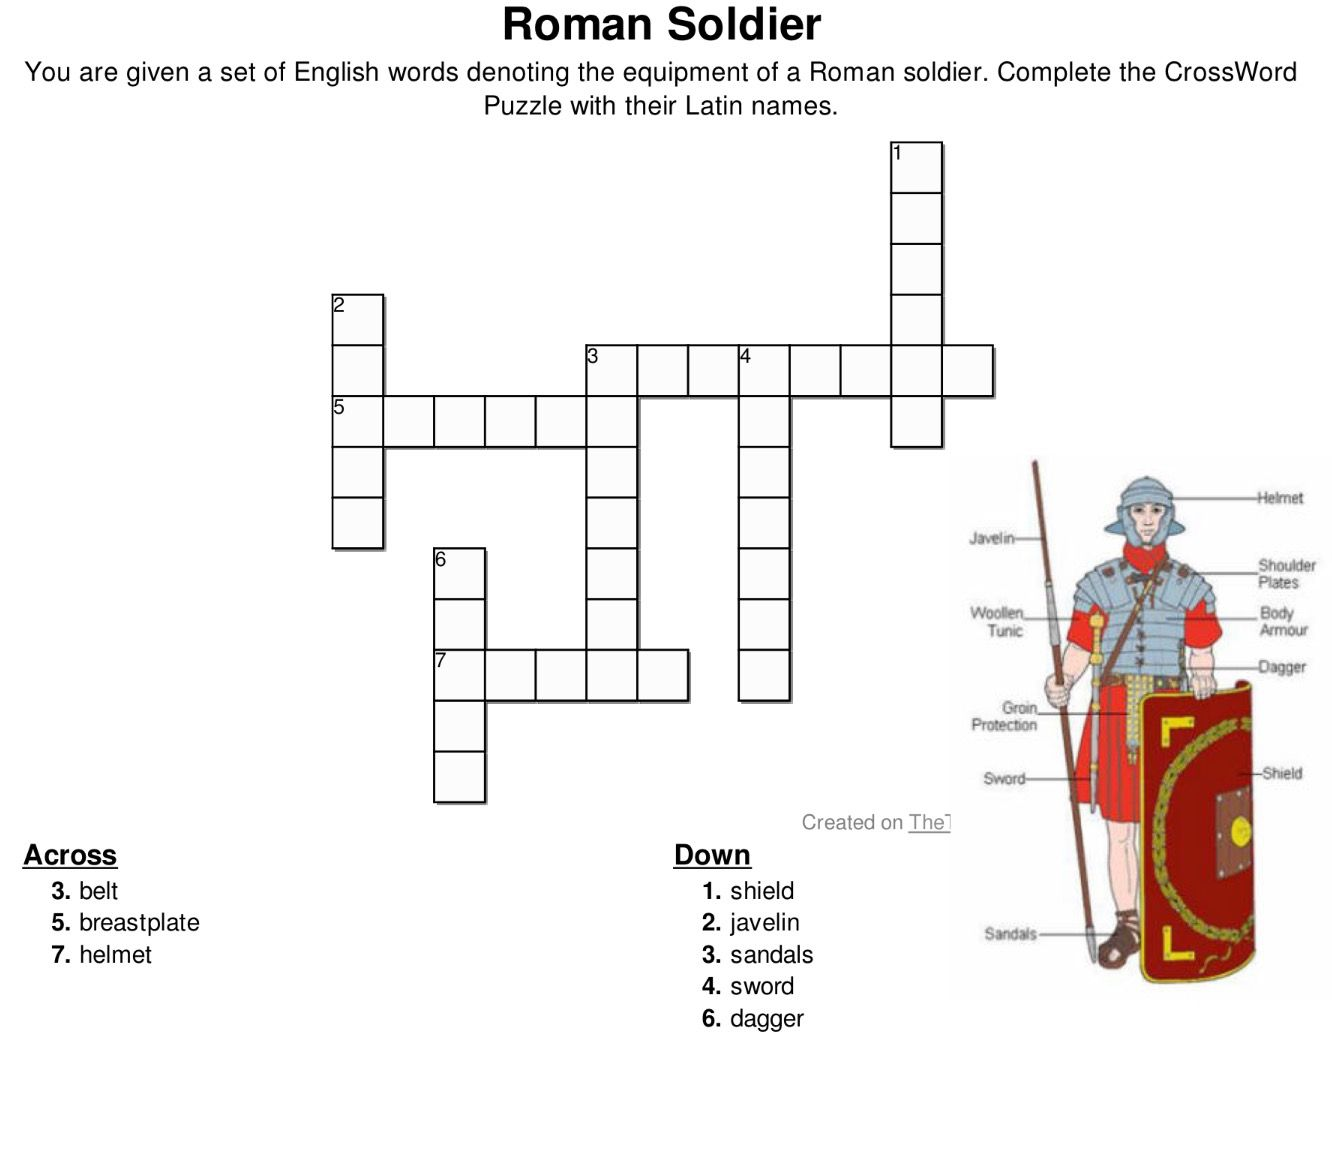 worksheet Roman Empire Worksheets crossword puzzle latin names for equipment and armor of a roman soldier http